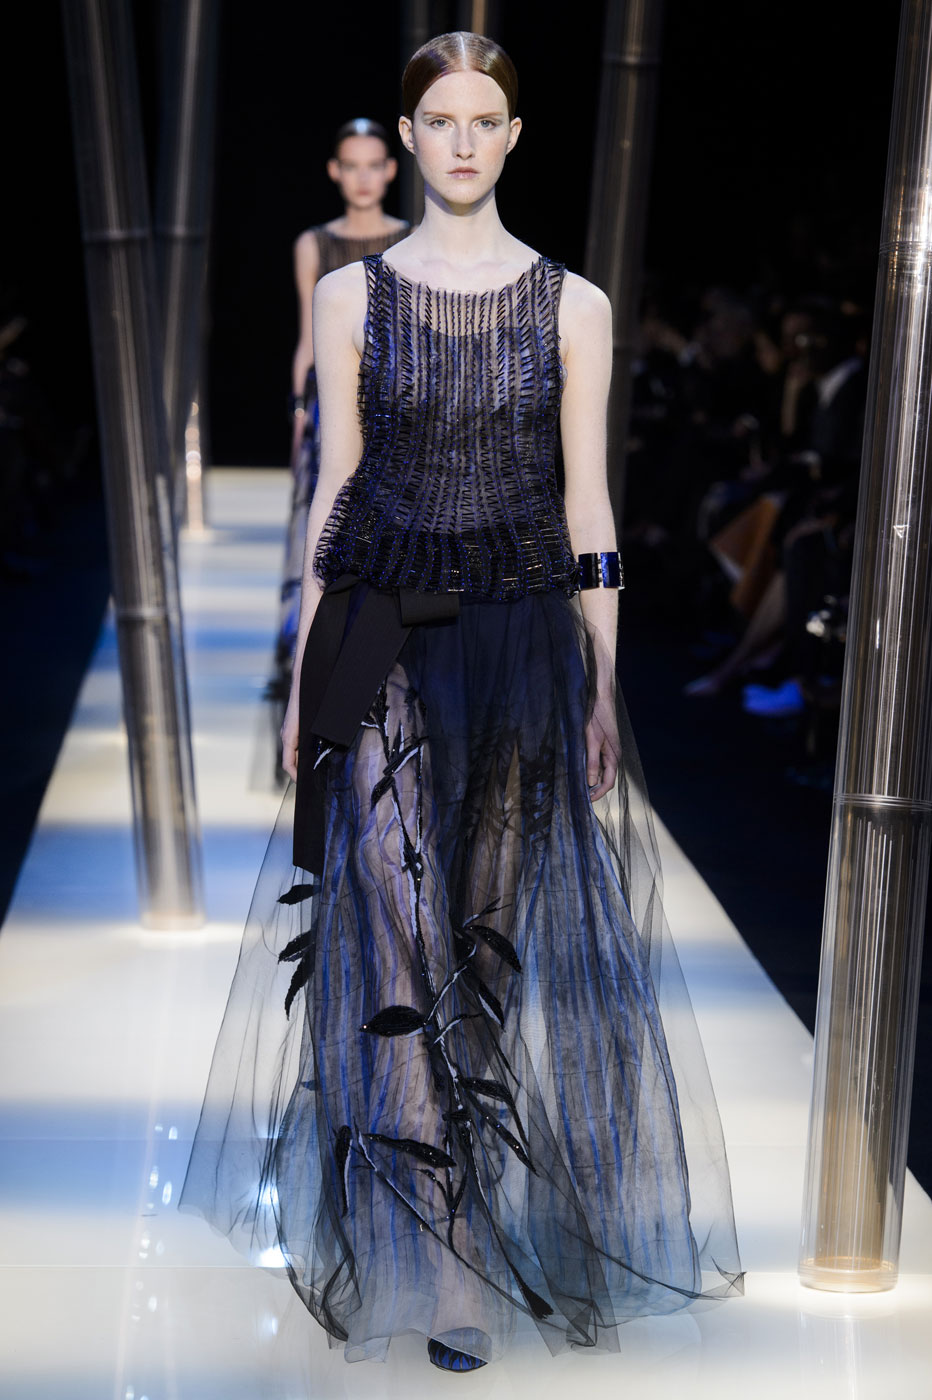 Giorgio-armani-Prive-fashion-runway-show-haute-couture-paris-spring-2015-the-impression-119